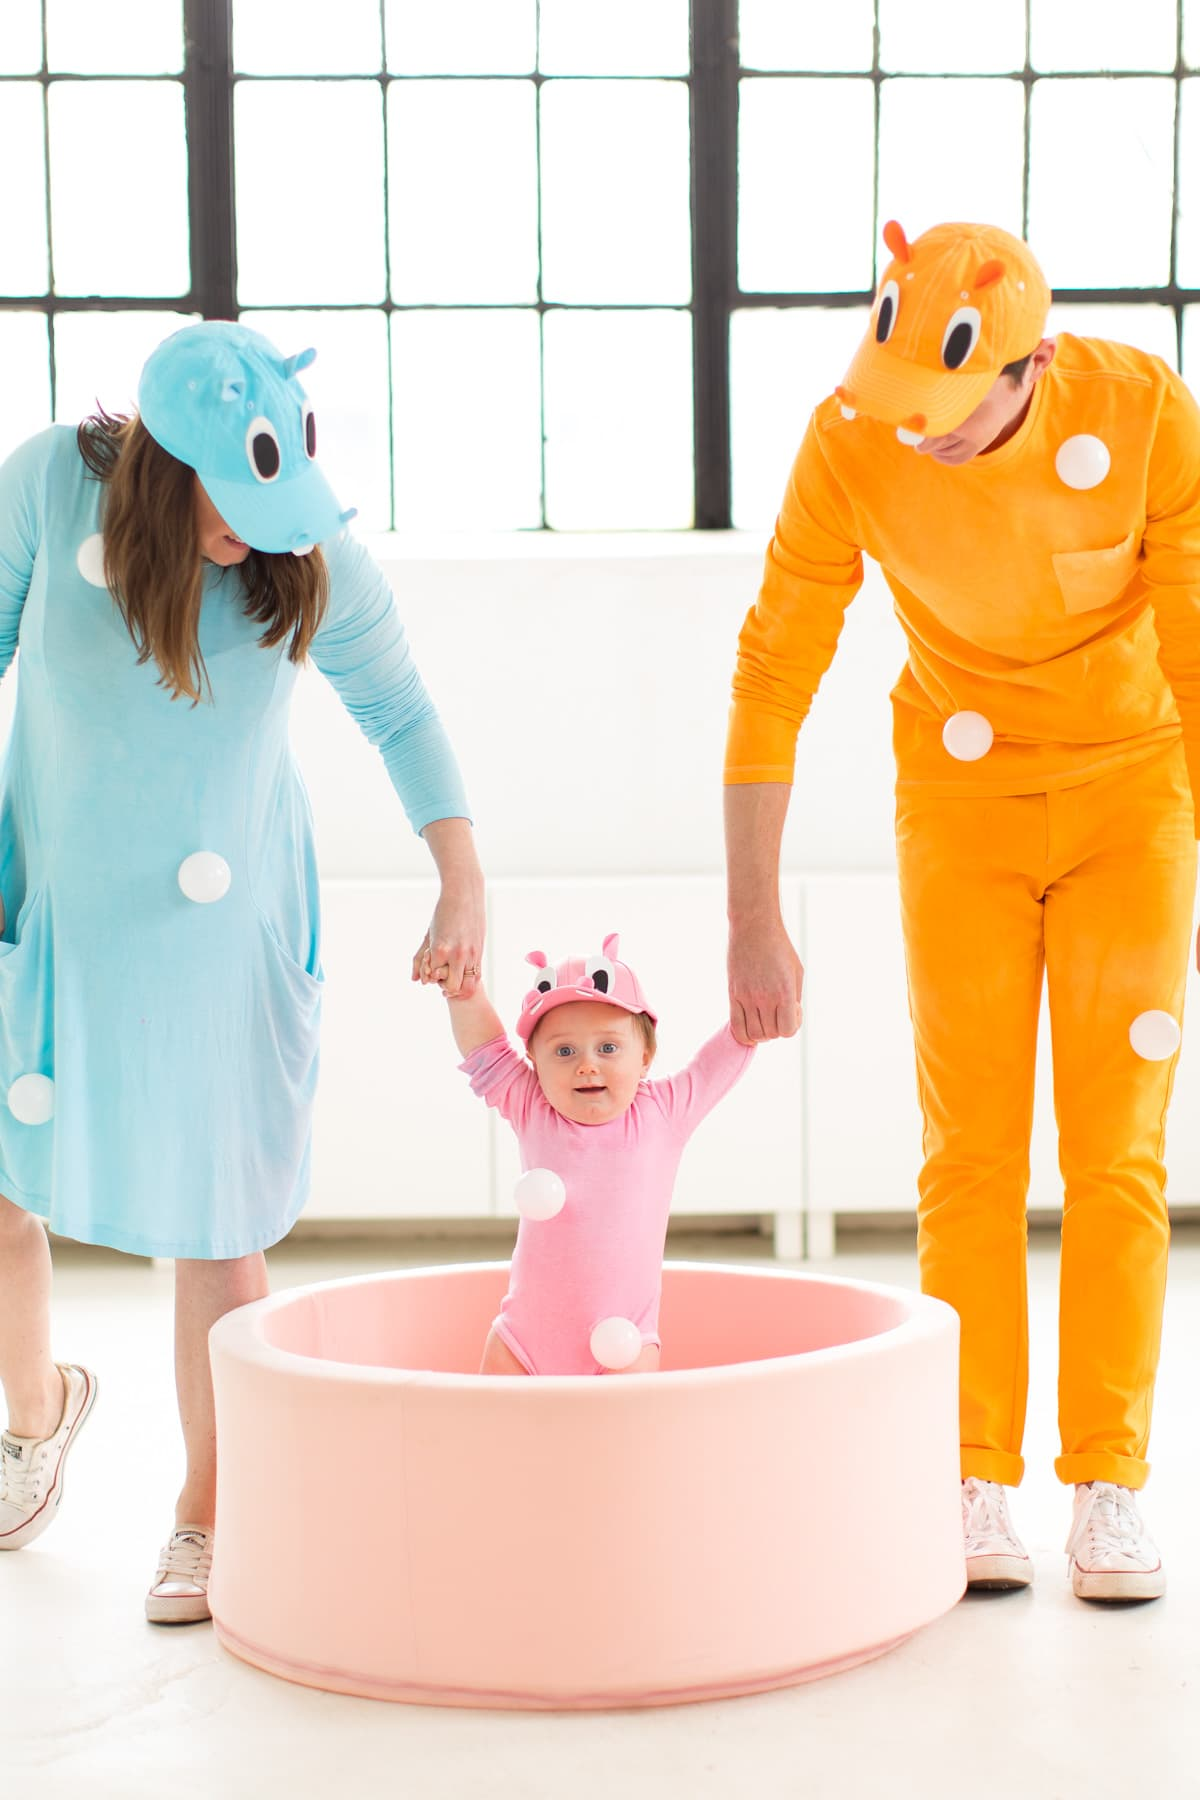 and you can't go wrong with a pink ball pit too, haha! -- loading up the crazy amount of baby gear! Our Family DIY Hungry Hippos Costume Idea -- by Top Houston blogger Ashley Rose of Sugar and Cloth -- #costumes #halloween #ideas #family #familycostume #diy